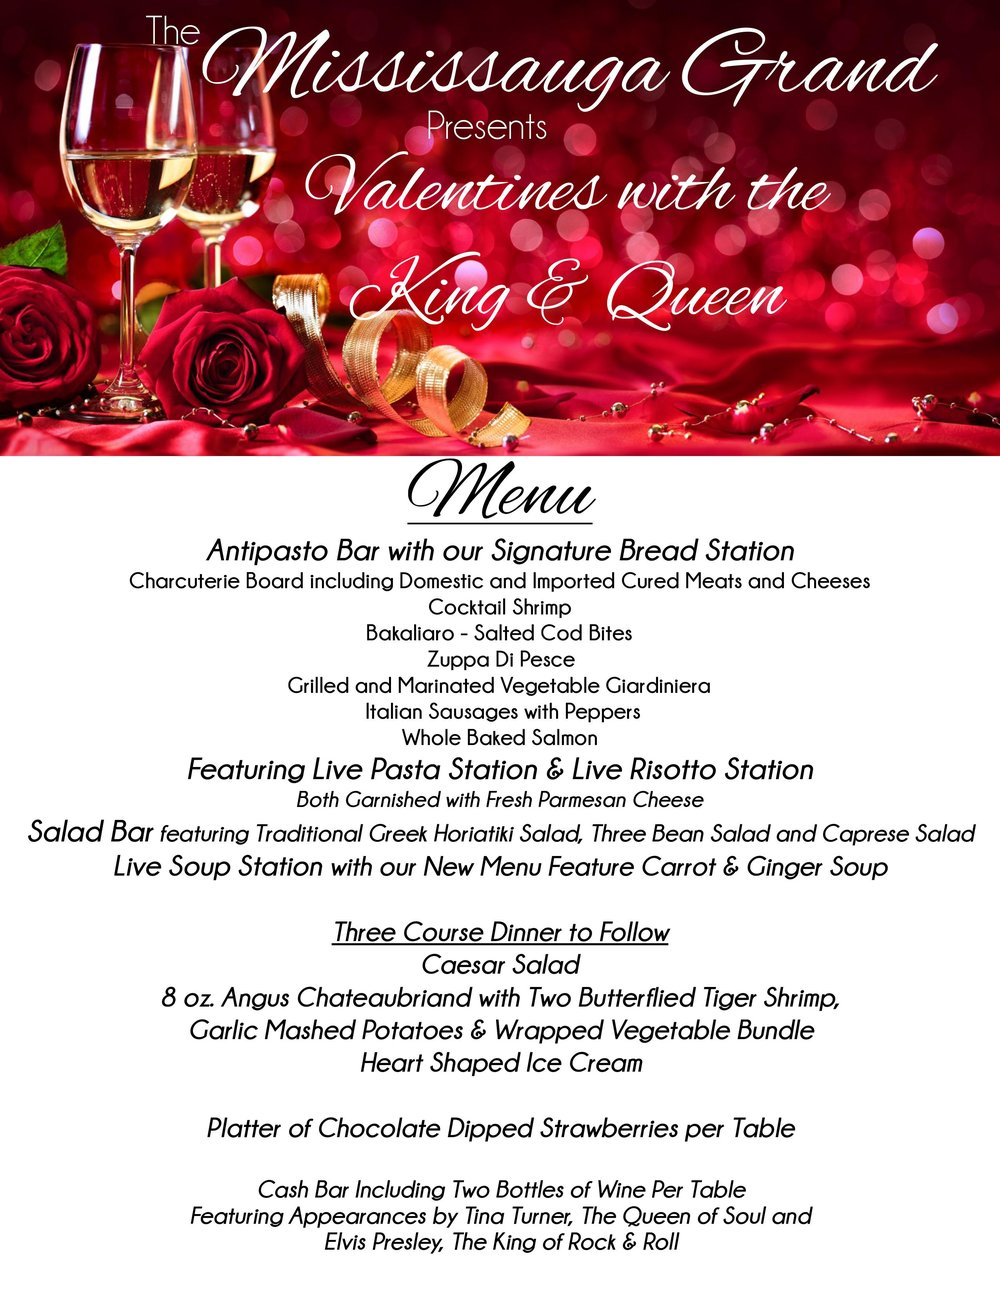 Menu-Mississauga-Grand-Valentines-Dinner-Dance-event-events-February.jpg